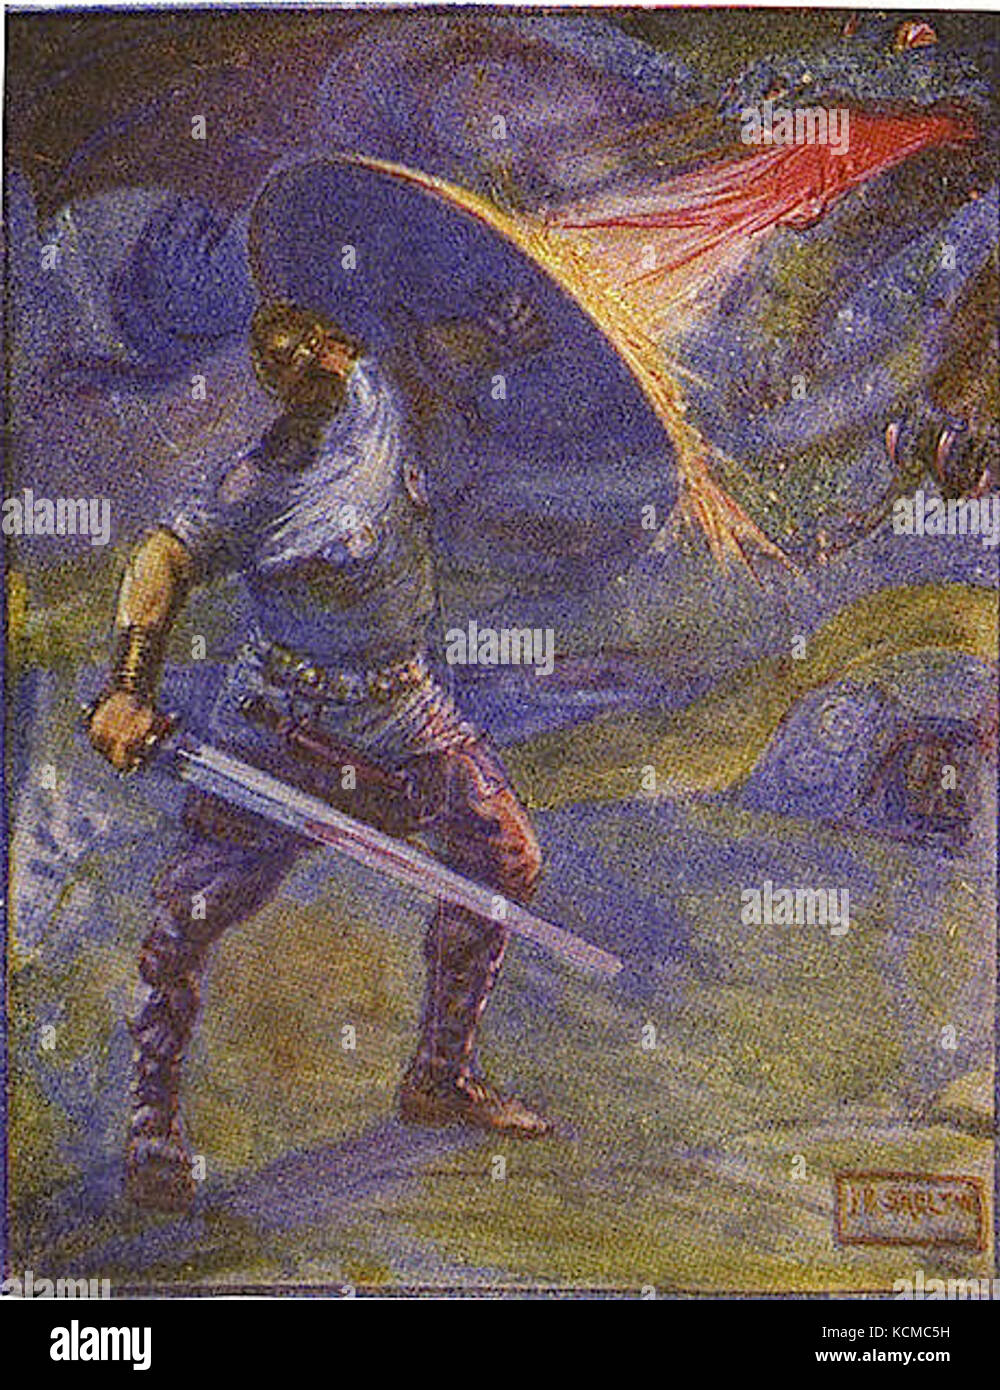 Beowulf and the dragon - Stock Image